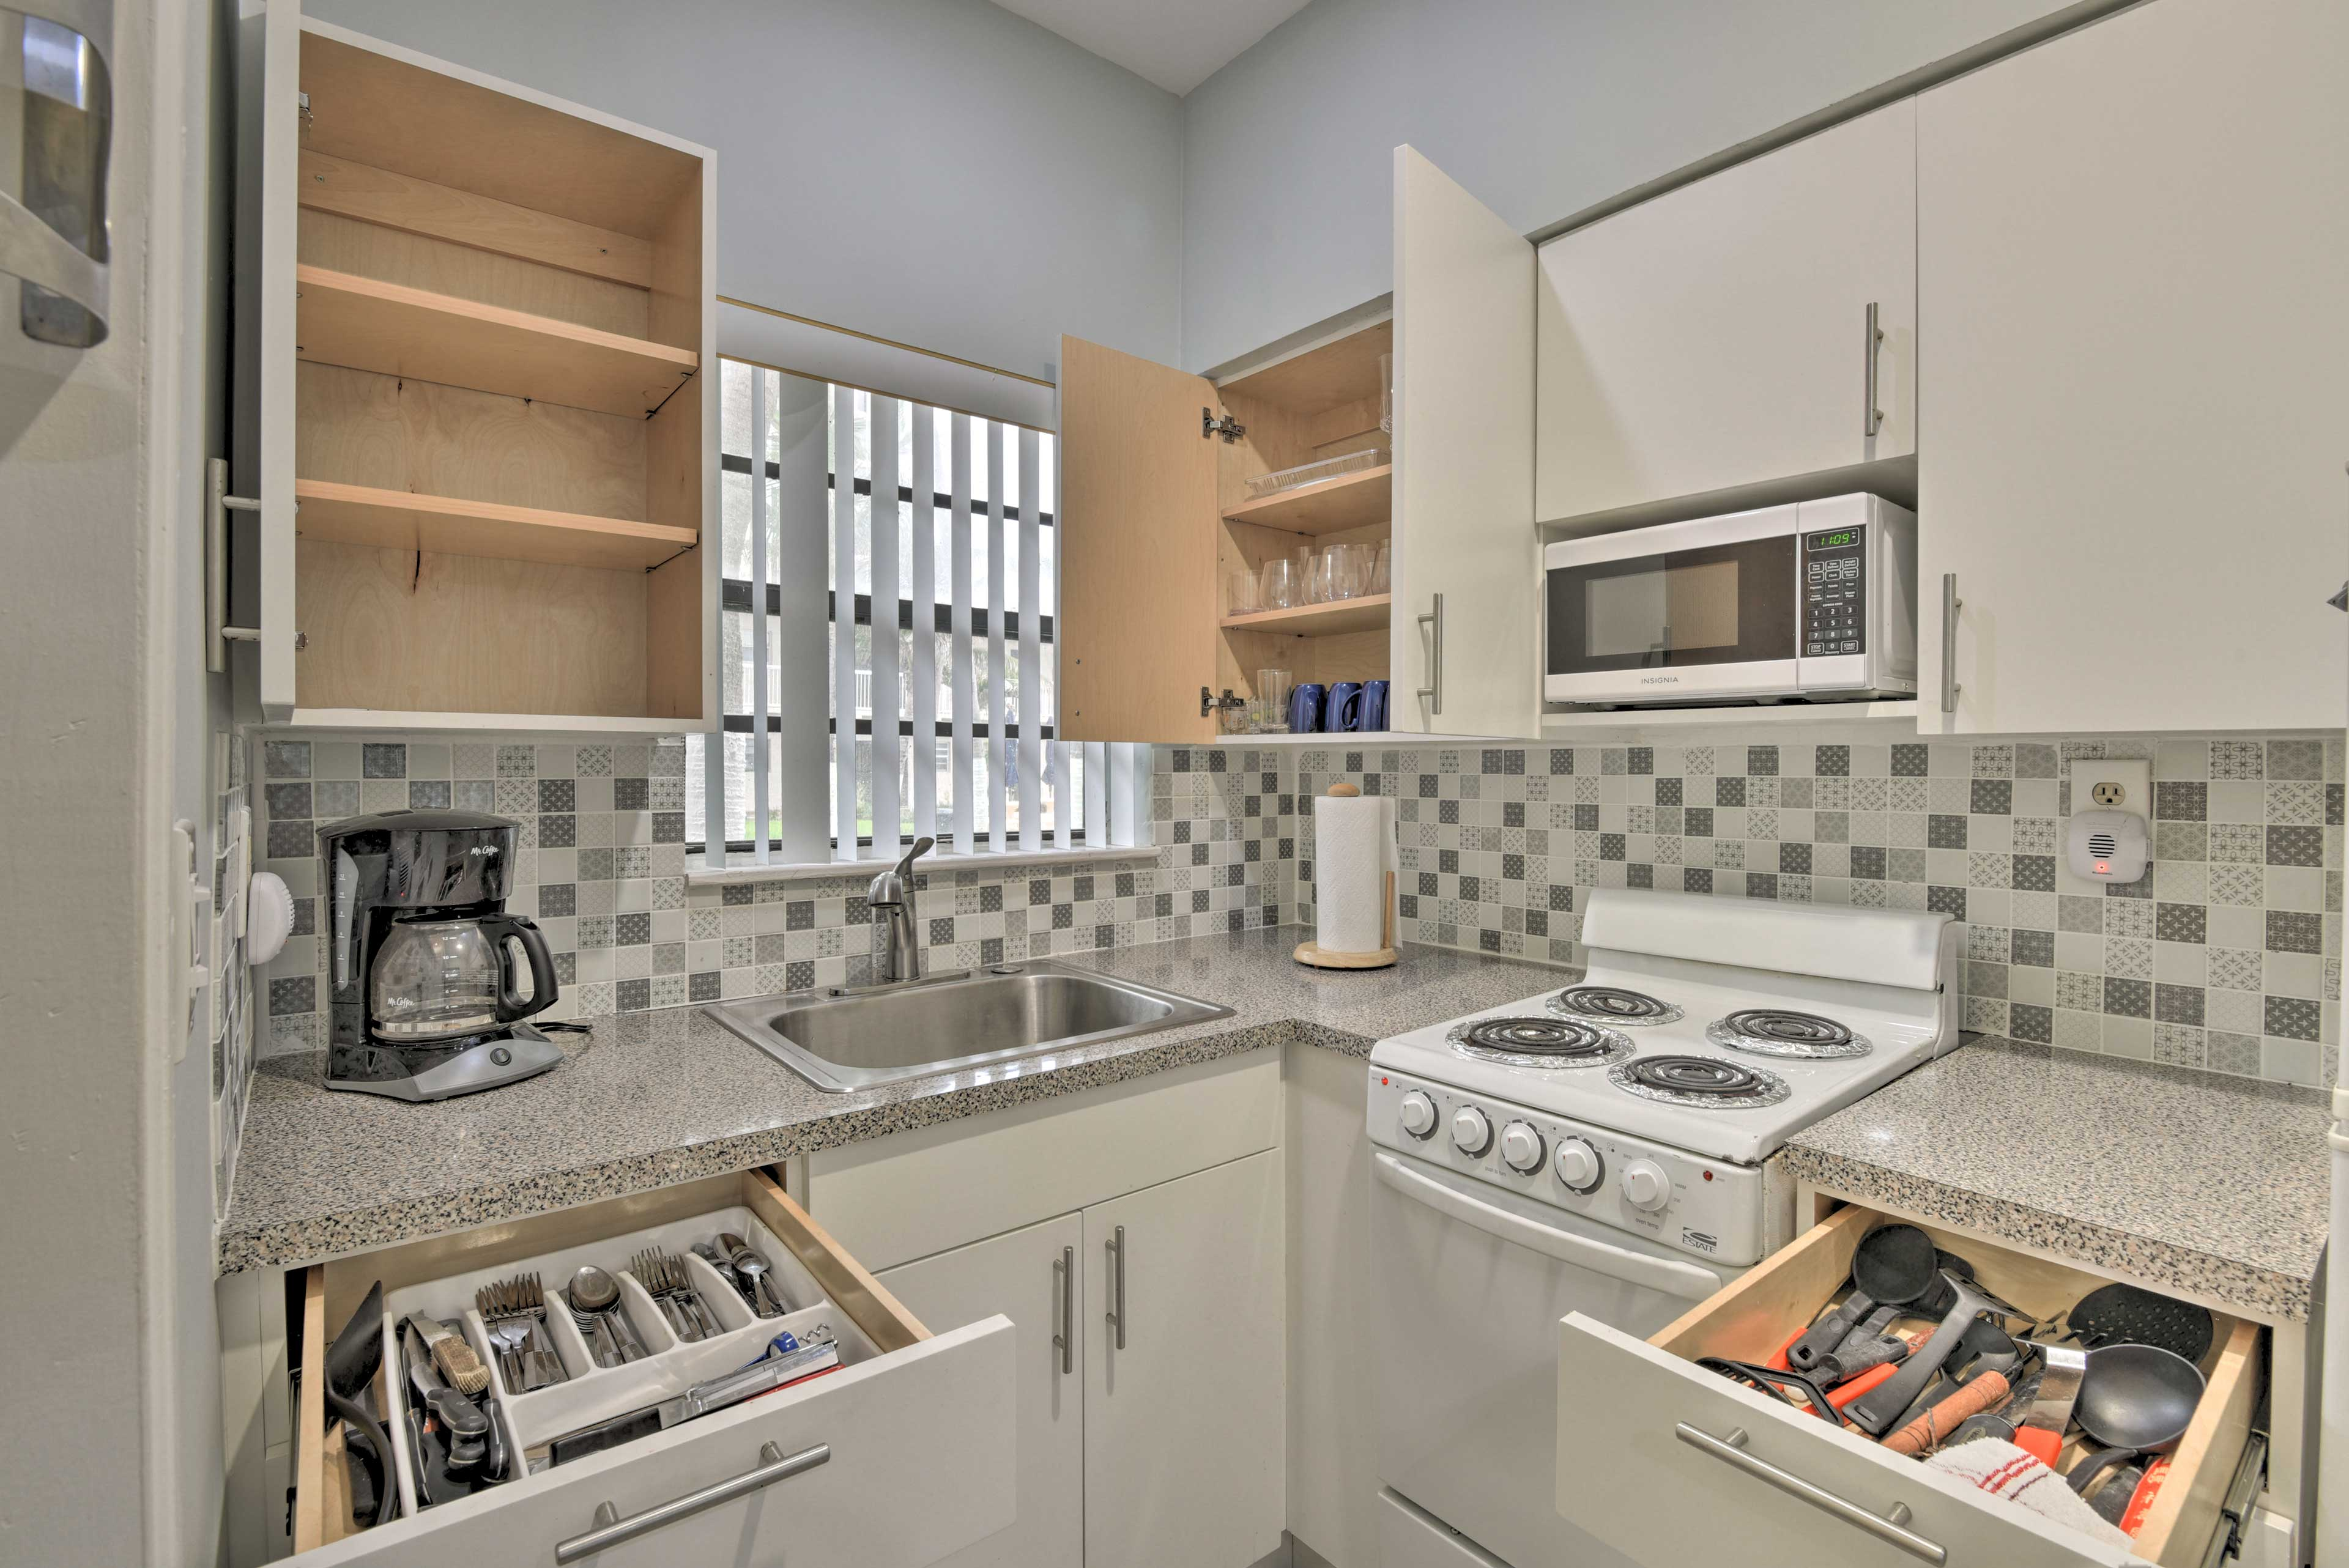 Cooking utensils, silverware, and flatware are all provided in the kitchen!